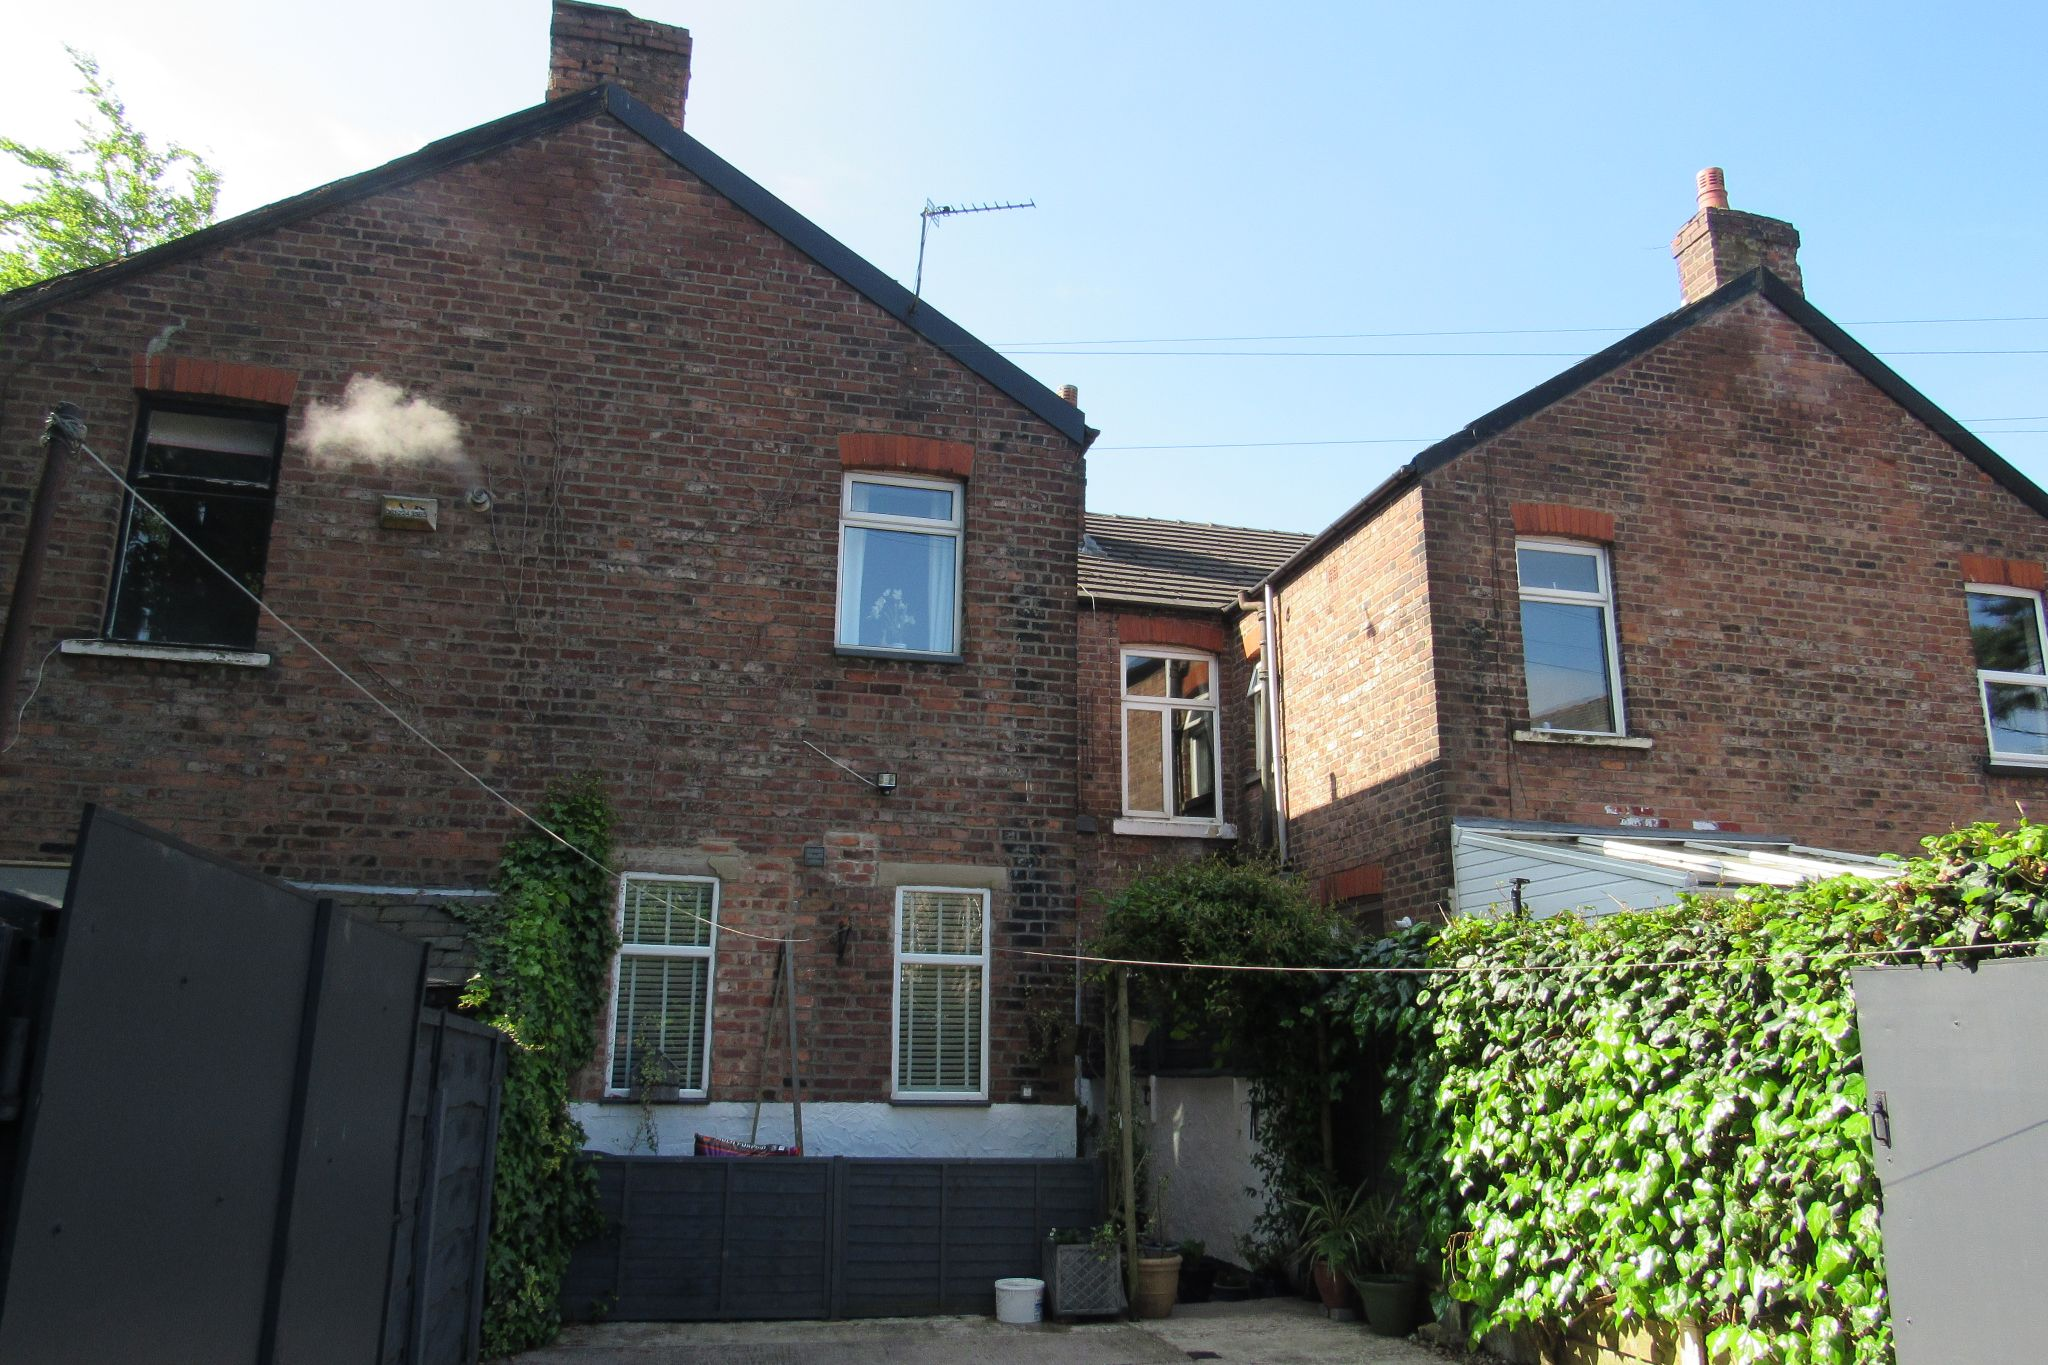 3 bedroom mid terraced house SSTC in Stockport - Photograph 39.